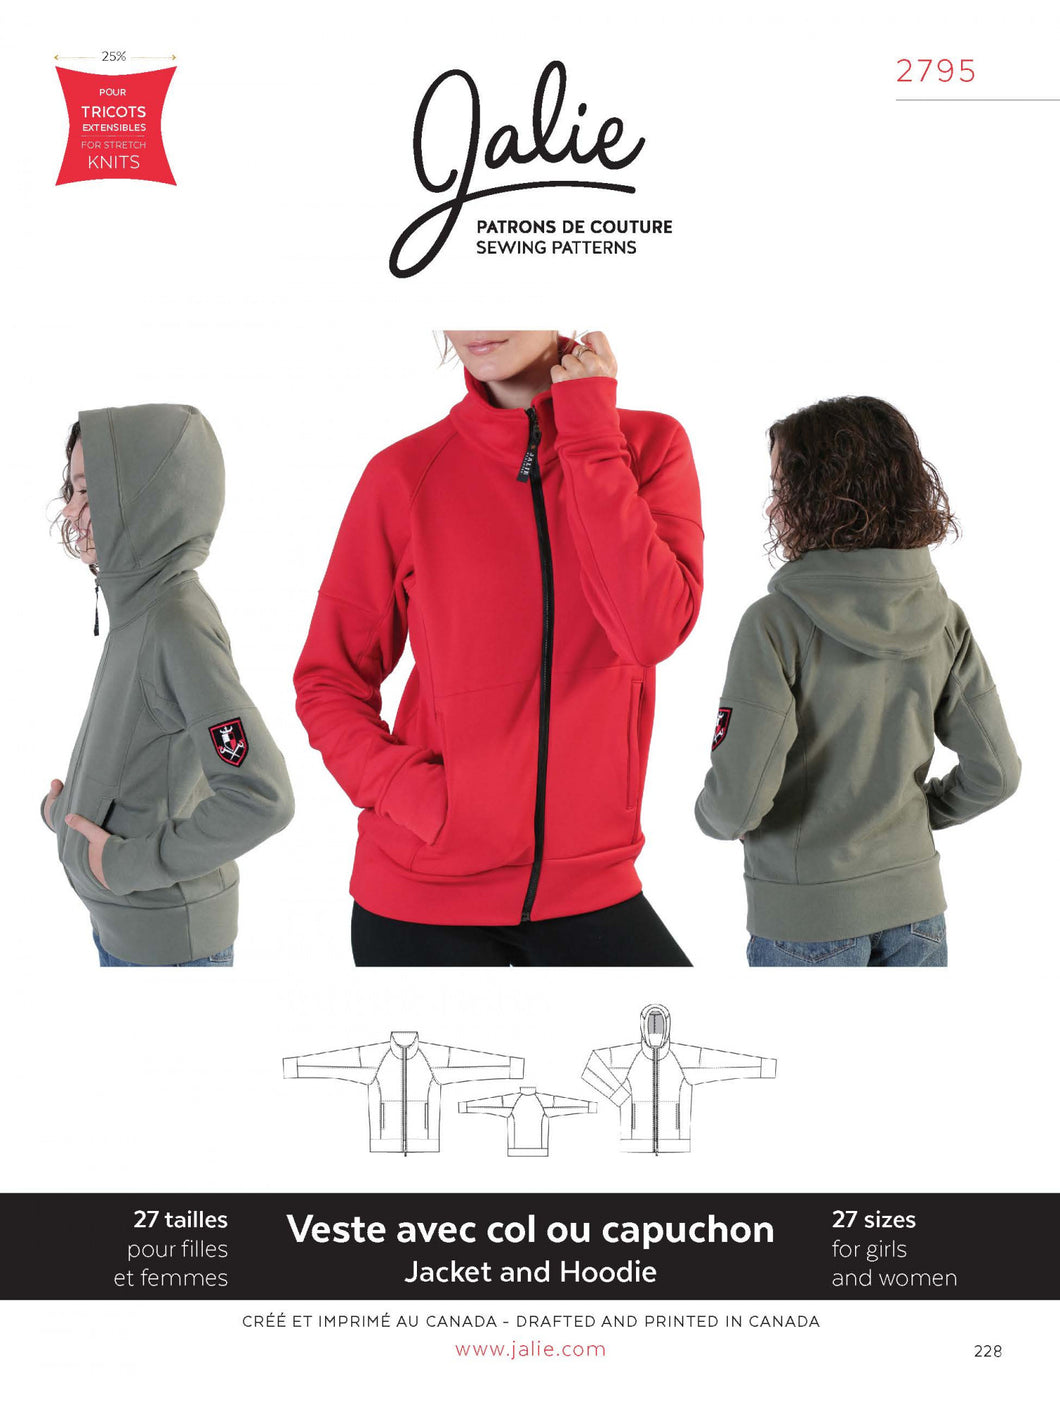 ZIP-FRONT JACKET AND HOODIE - PAPER PATTERN